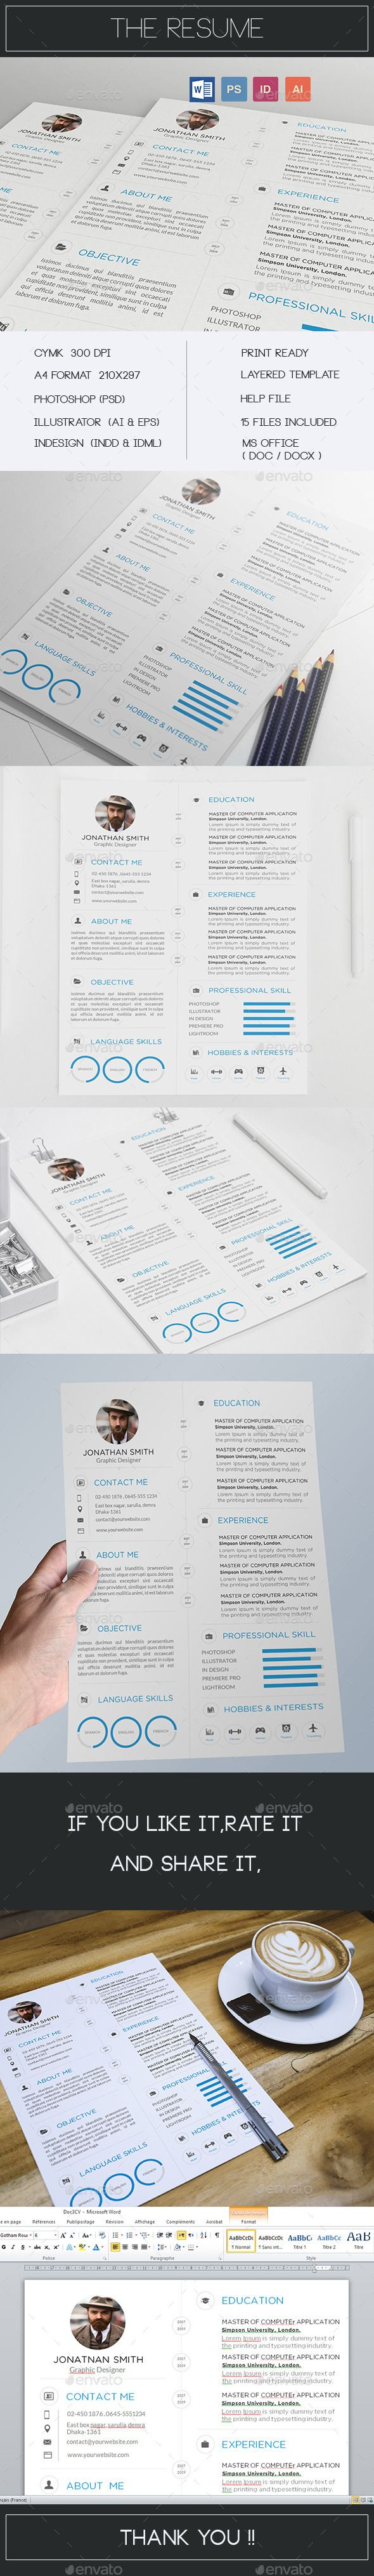 Creative Resume / CV — Photoshop PSD #work #simple • Available here → https://graphicriver.net/item/creative-resume-cv/11617829?ref=pxcr